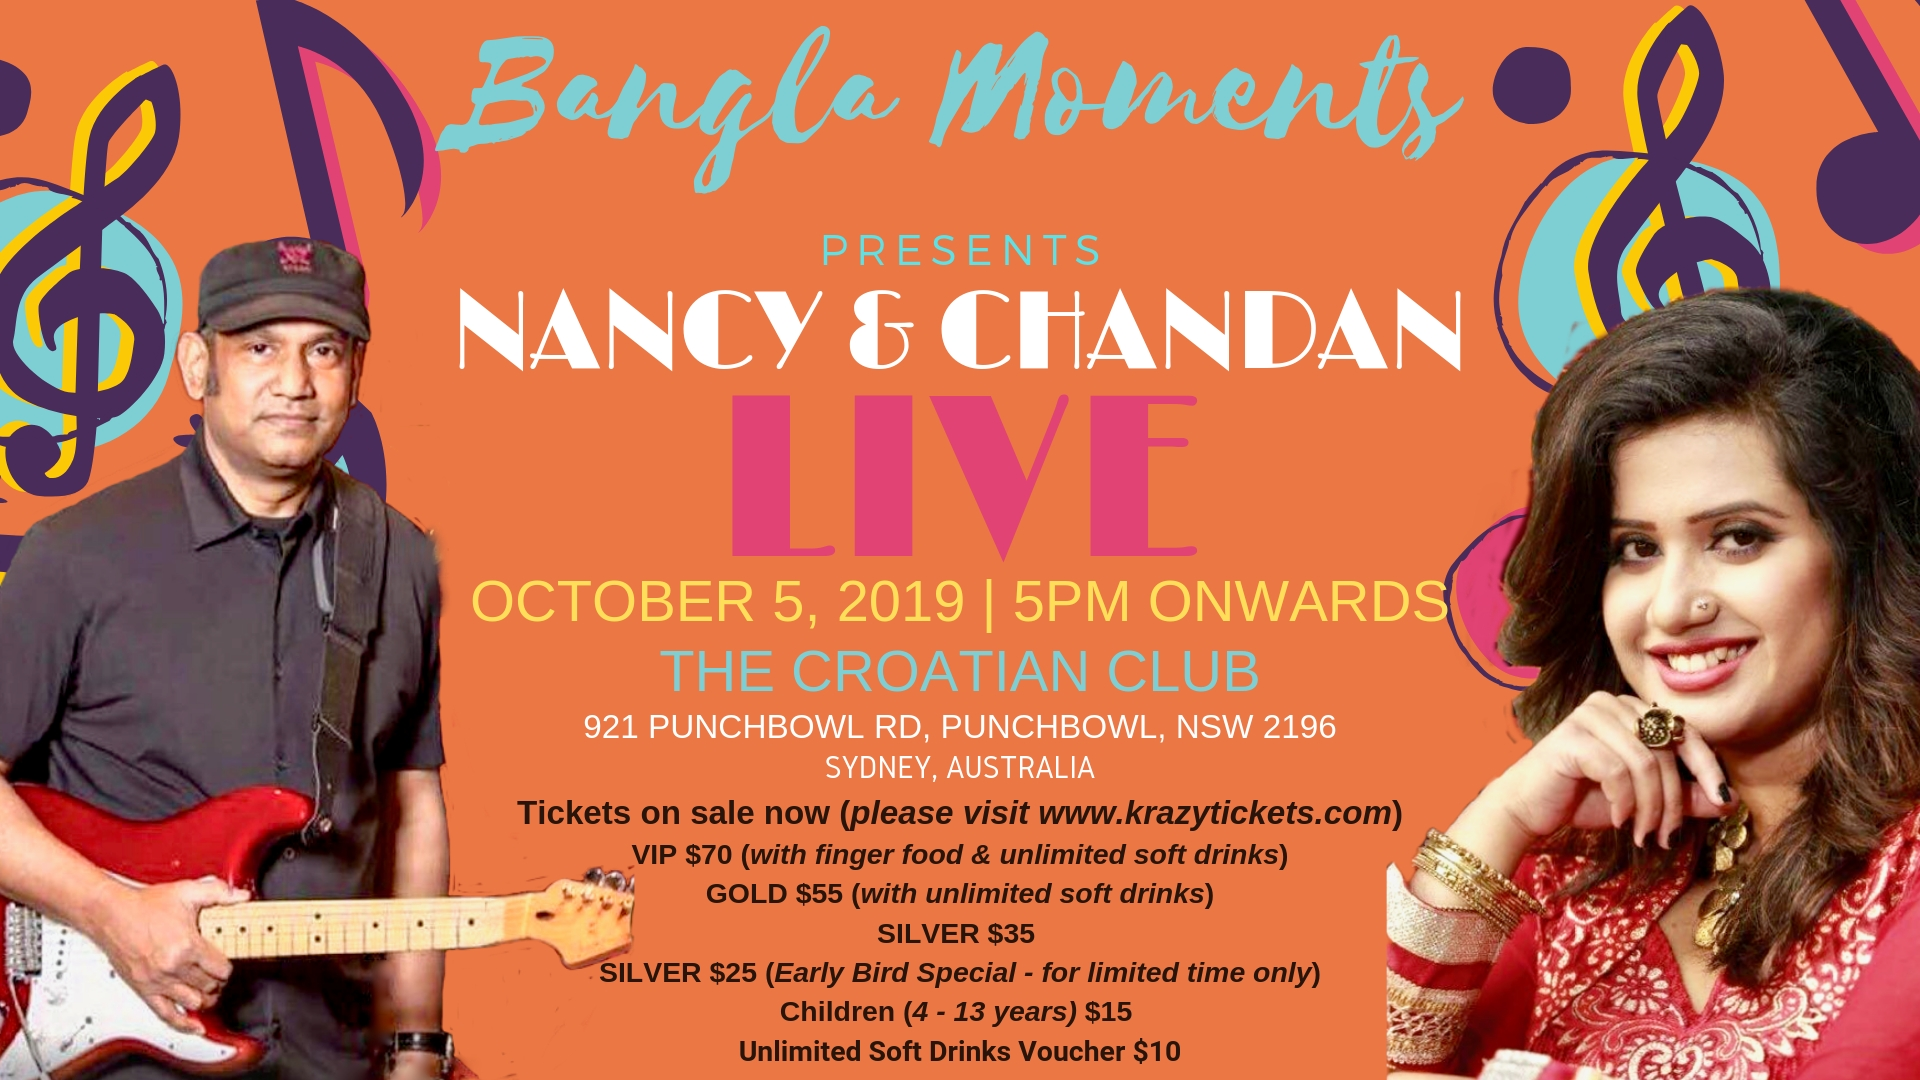 Nancy and Chandan Live in Sydney